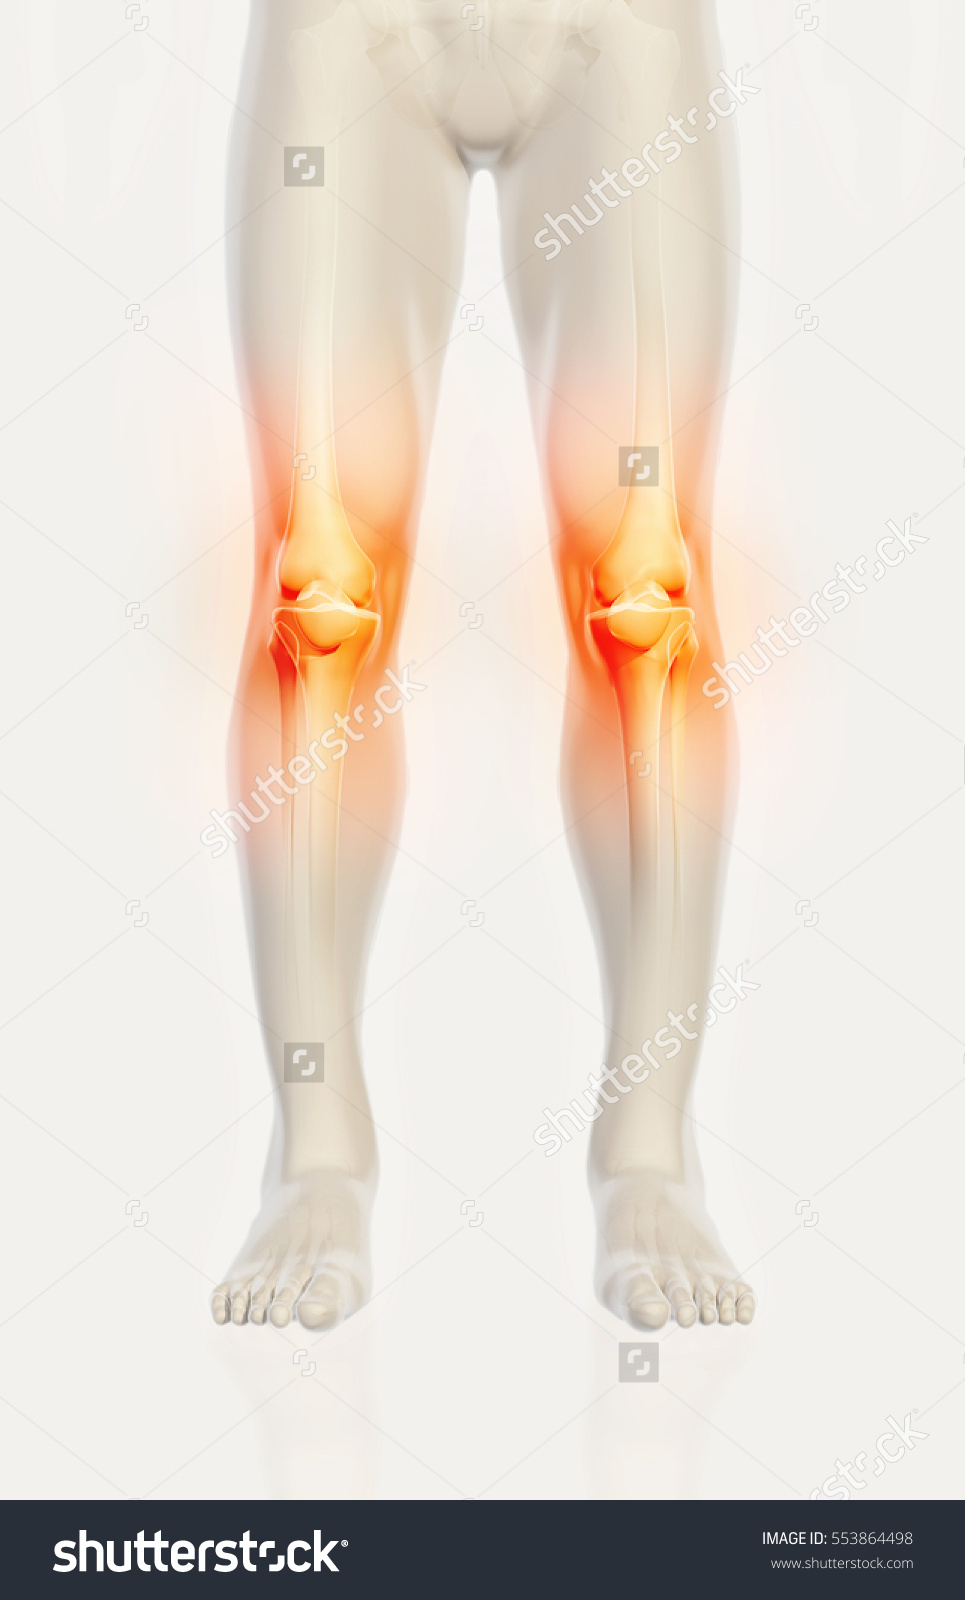 stock-photo-knee-painful-skeleton-x-ray-d-illustration-medical-concept-553864498.jpg